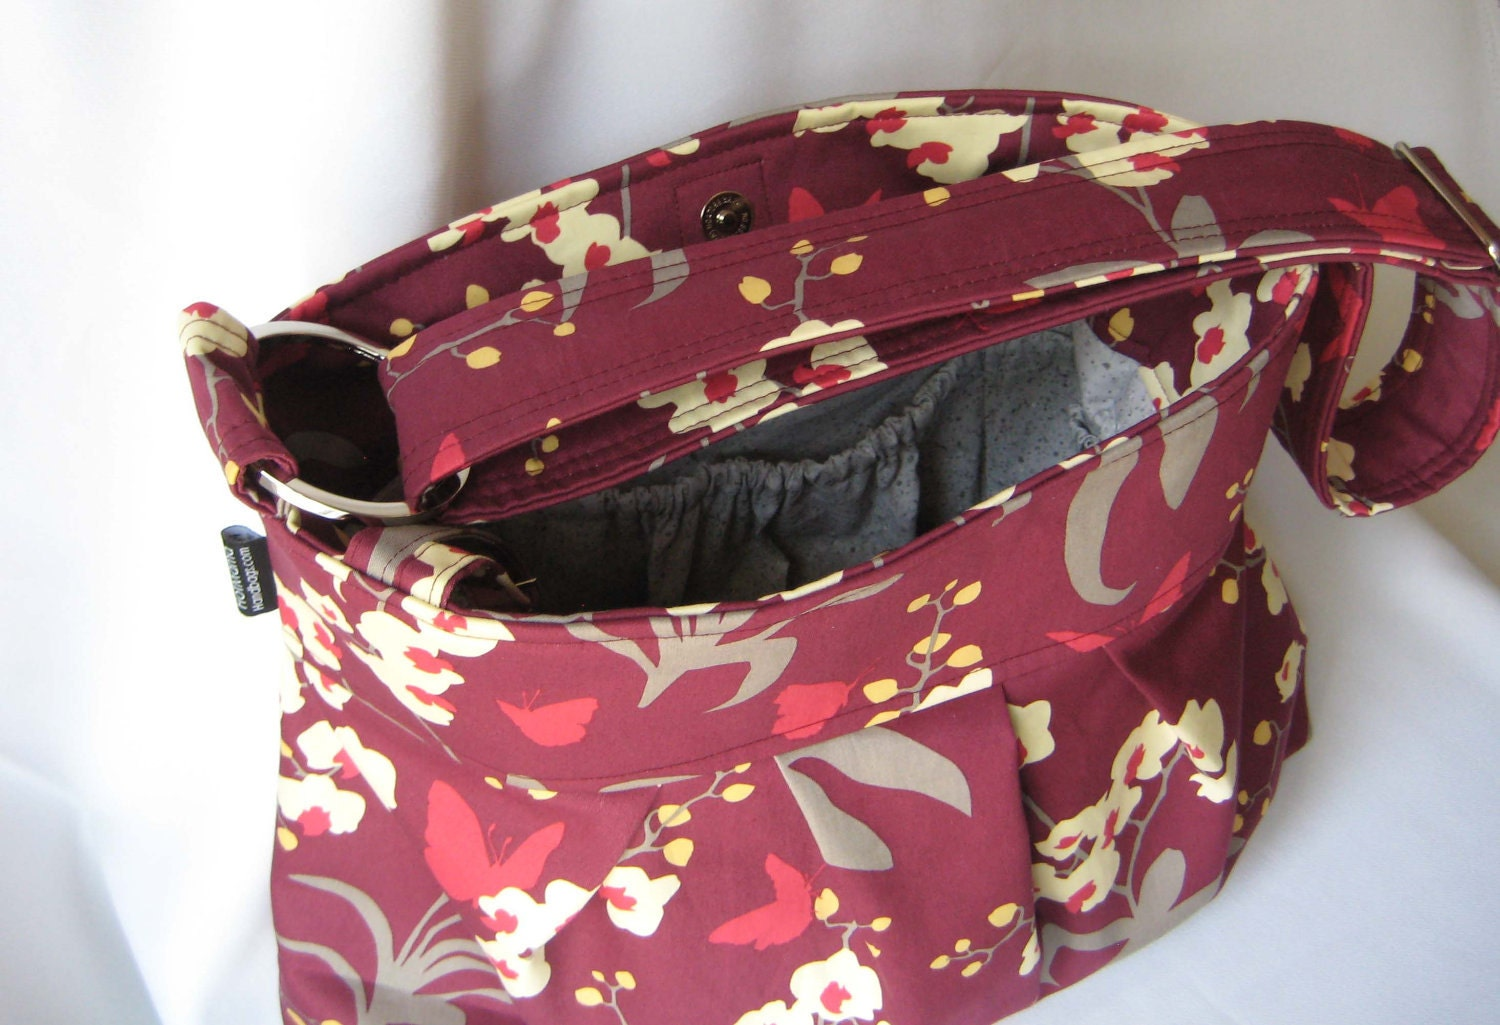 Ginseng Orchid Mulberry Emma Medium Messenger by maranda lee  diaper bag purse out of print limited custom